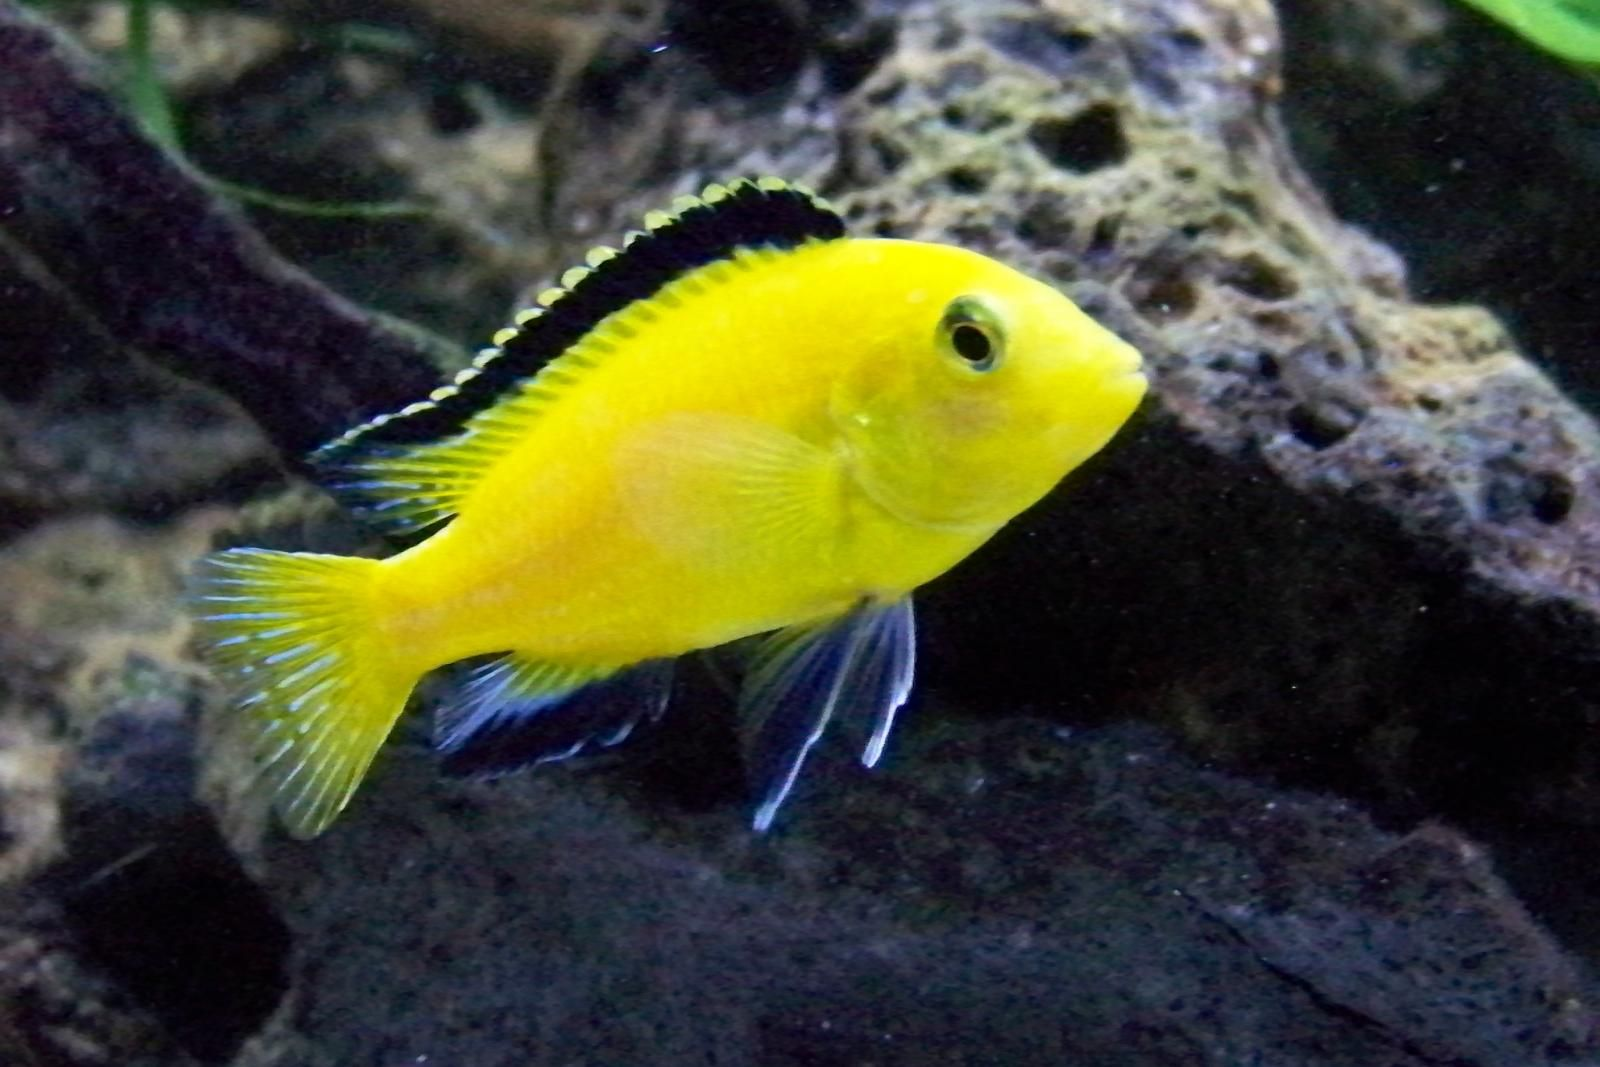 Black and yellow freshwater aquarium fish - Find Information About Keeping The Electric Yellow Cichlid Or Labidochromis Caeruleus In A Home Aquarium Including Advice For Feeding And Breeding Your